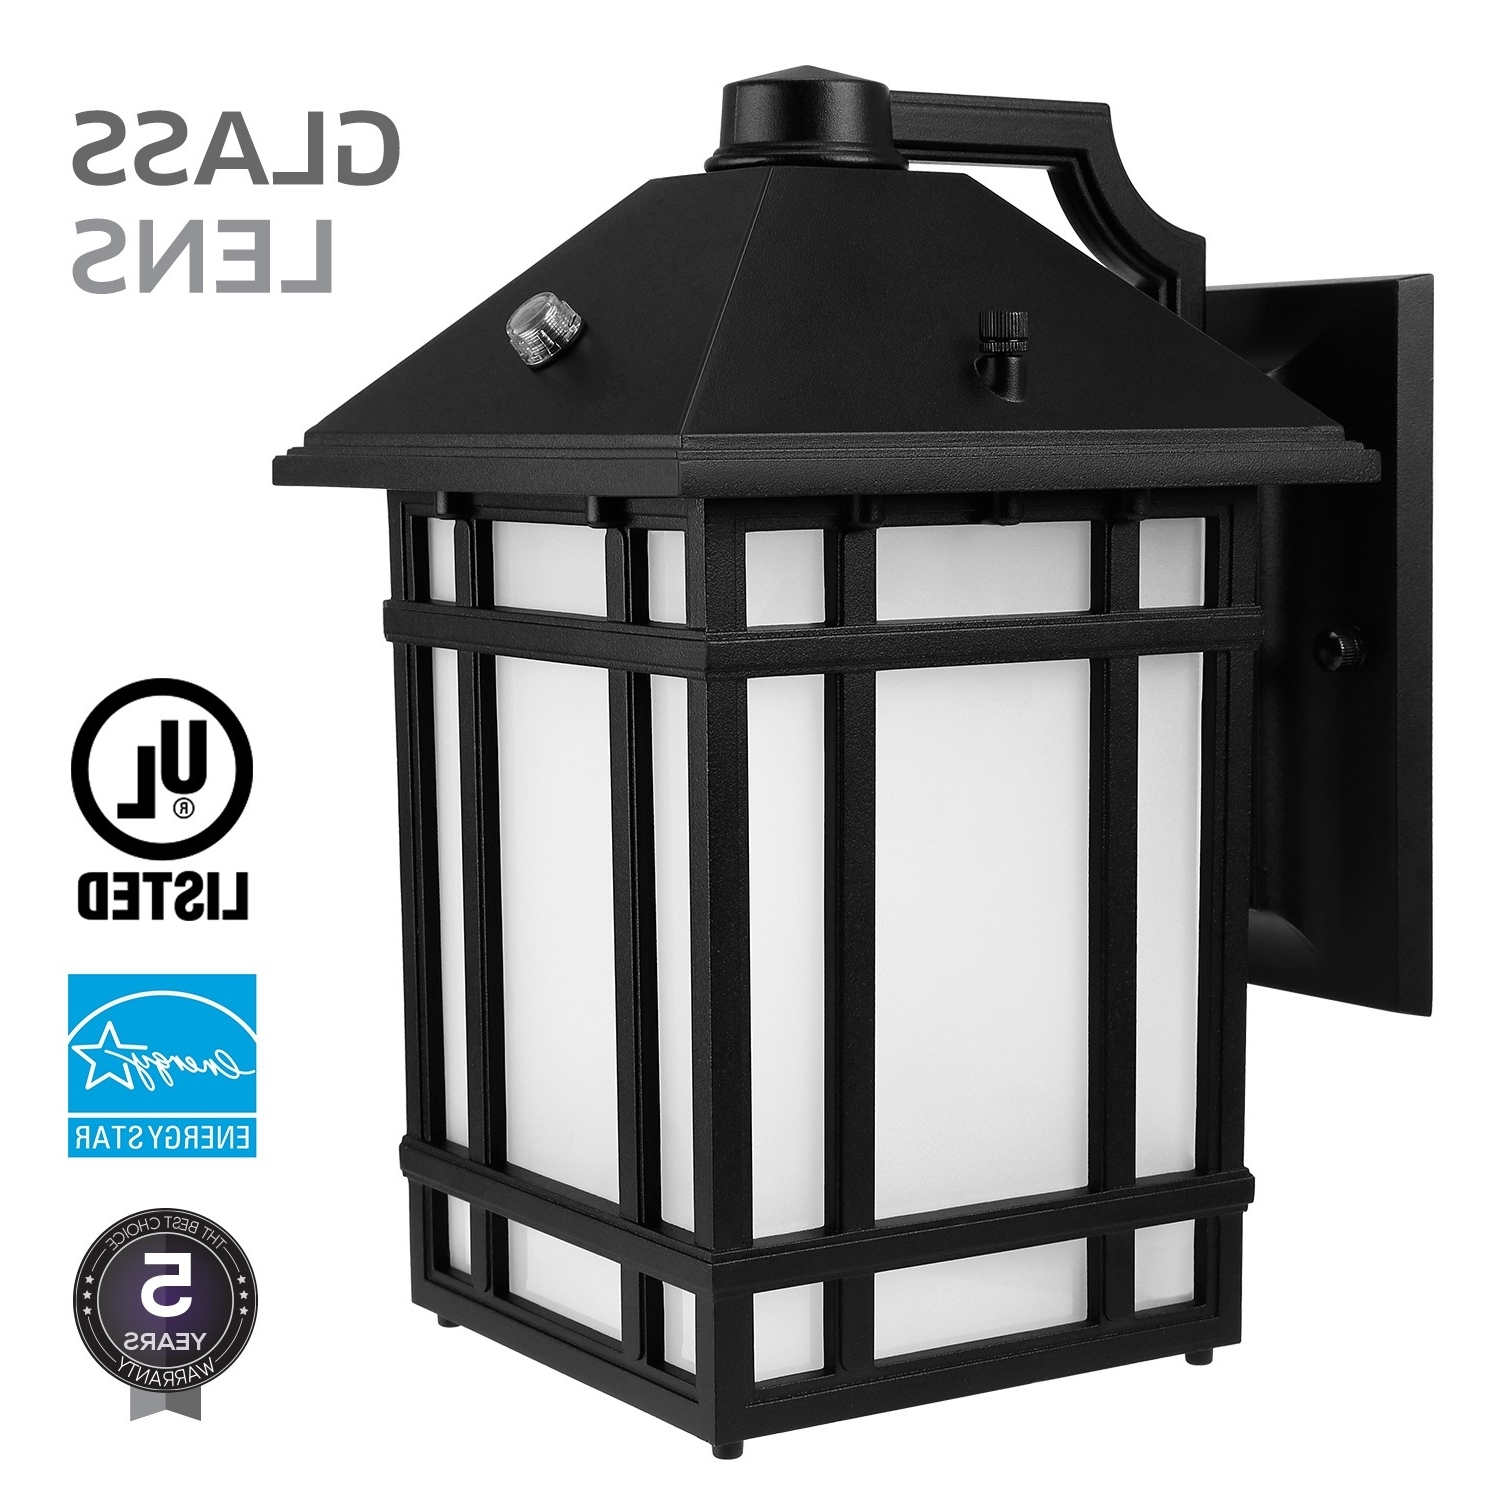 Led Outdoor Wall Lantern With Dusk To Dawn Photocell, 23W (130W For Recent Led Outdoor Wall Lights With Photocell (View 5 of 20)